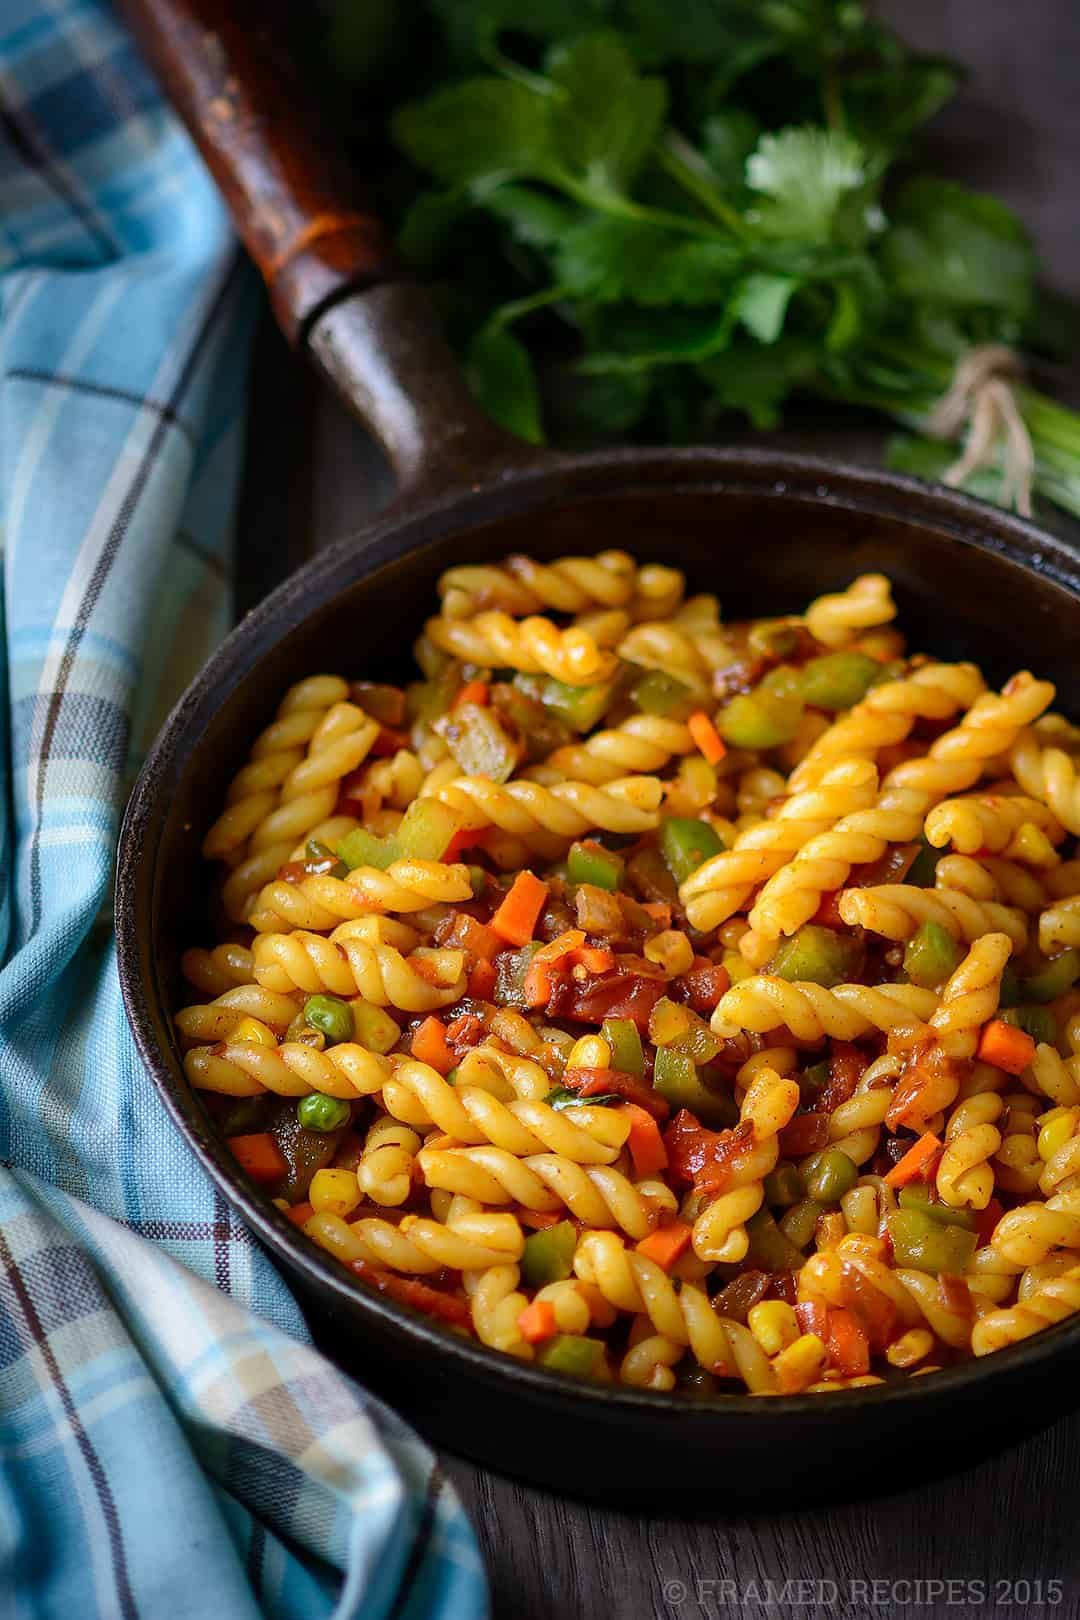 Pasta with Indian Spices